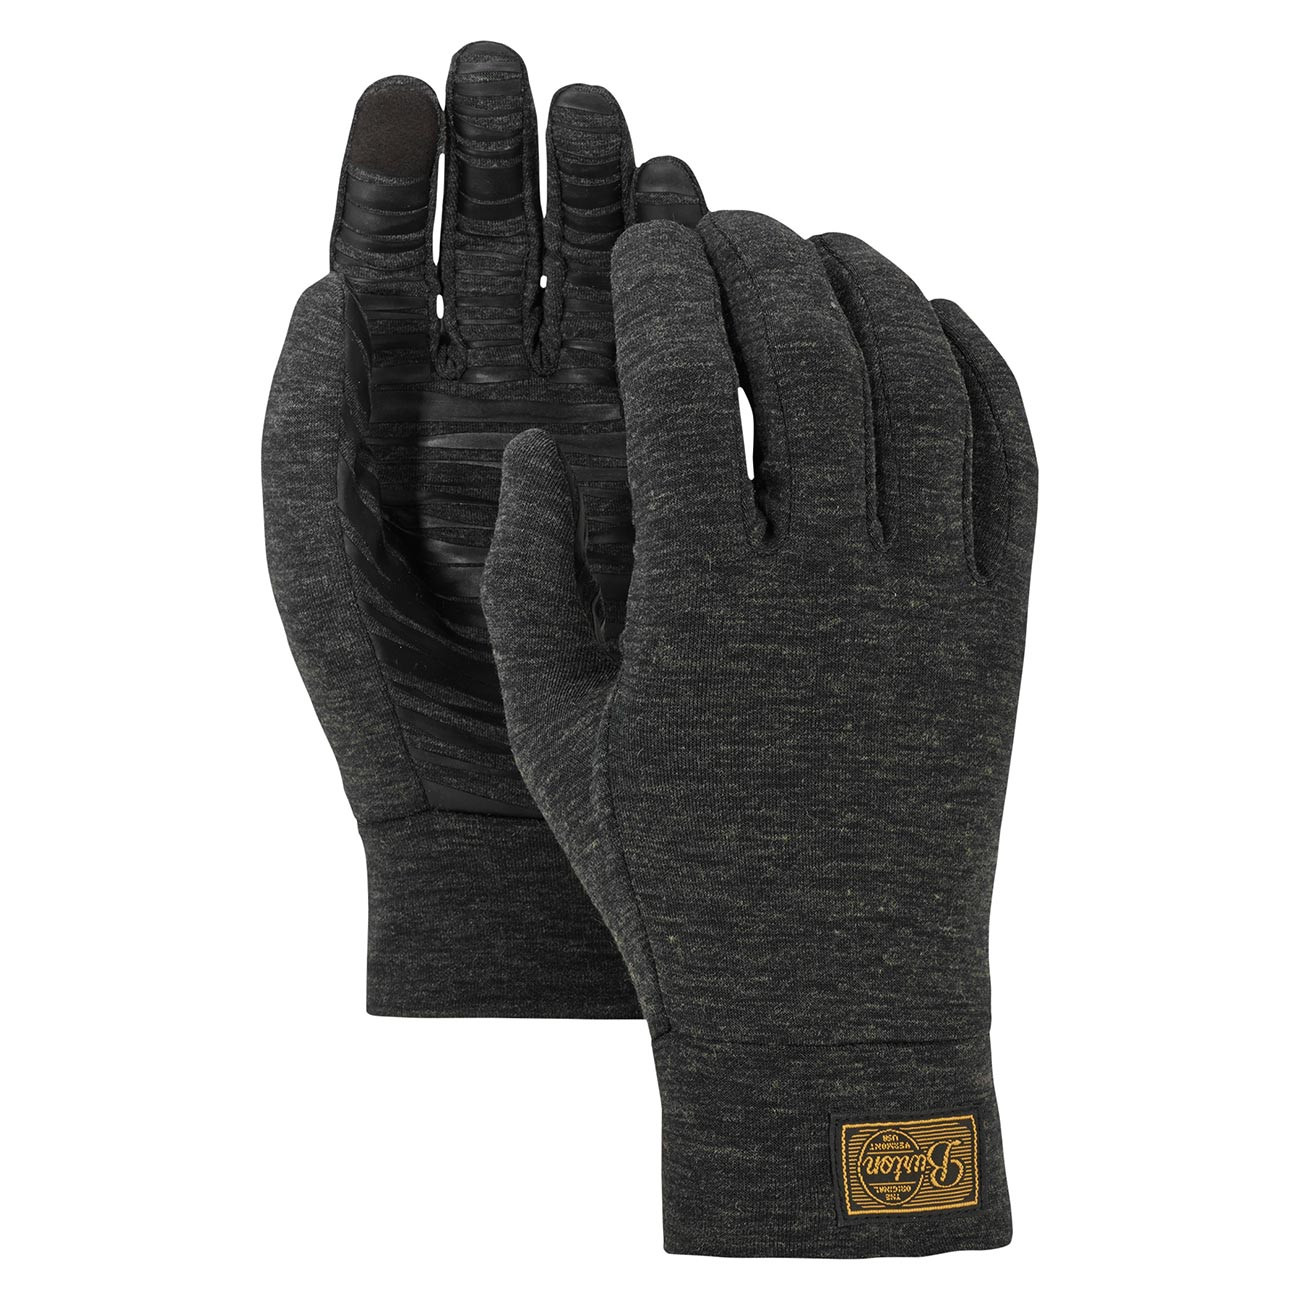 Rukavice Burton Wool true black heather